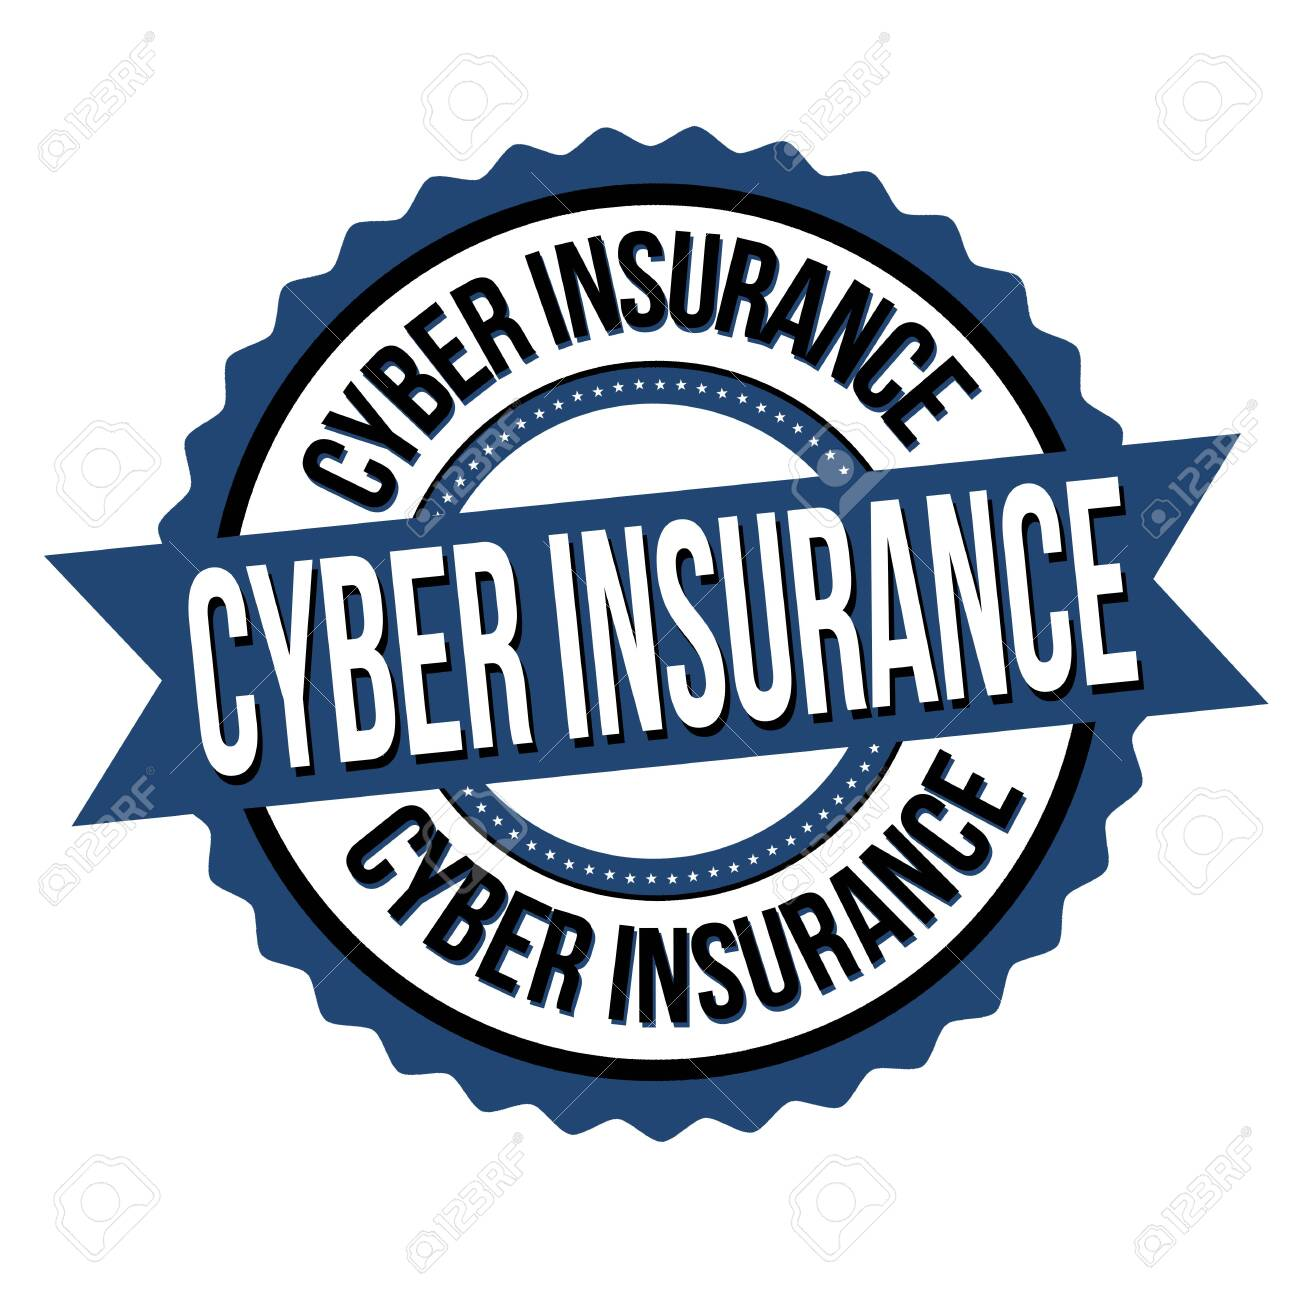 Cyber insurance label or sticker on white background, vector illustration - 140524476